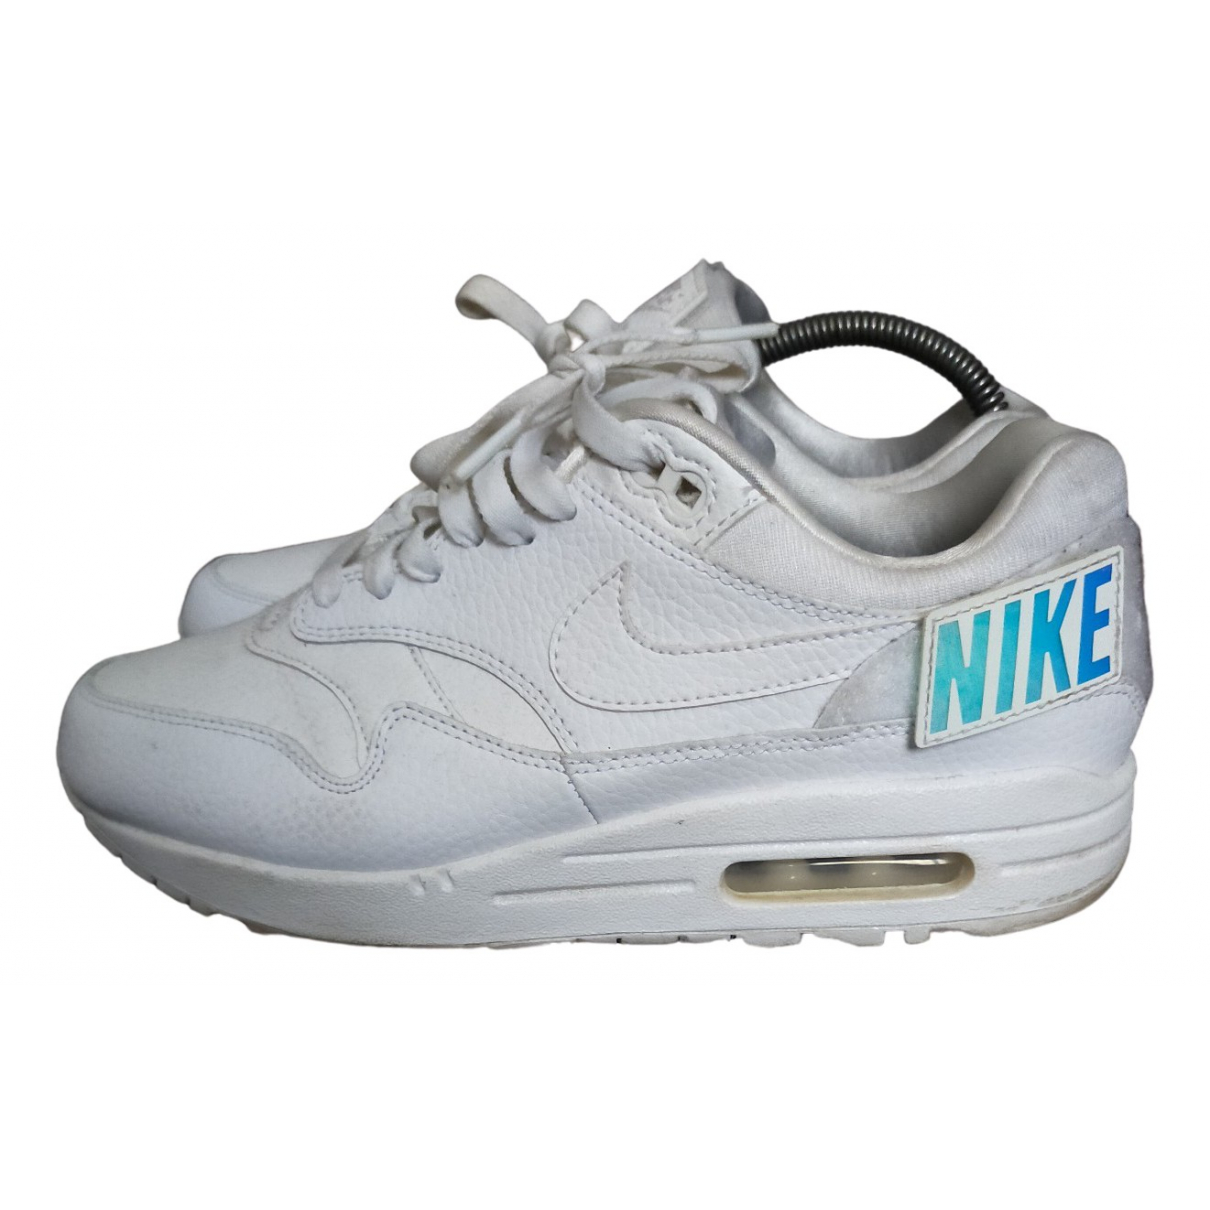 Nike Air Max 1 White Leather Trainers for Women 40 EU